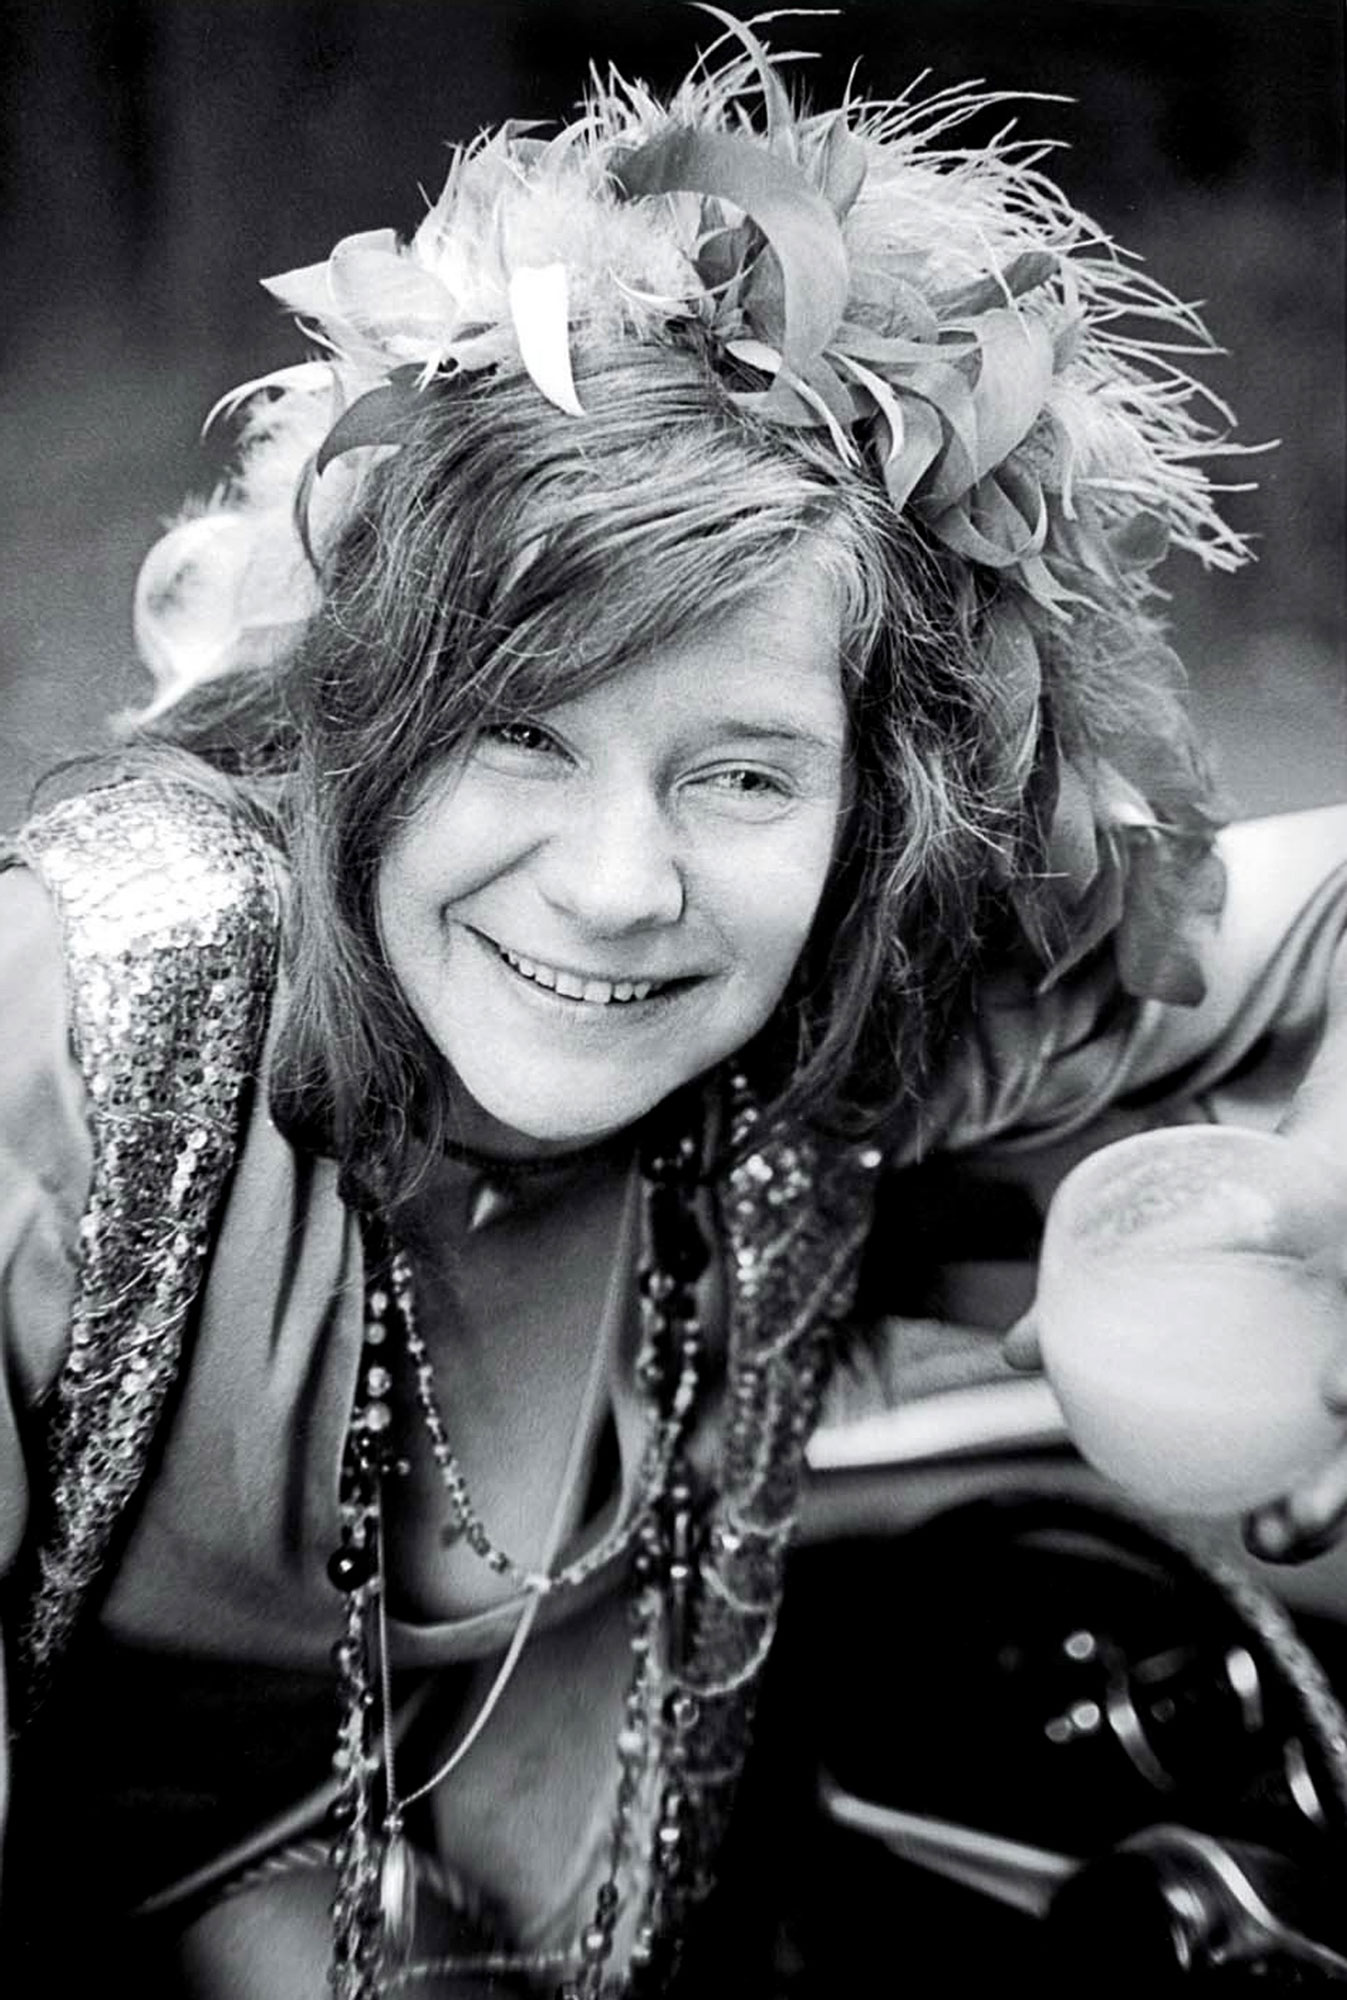 a-guide-to-cool-janis-joplin-folkr-1